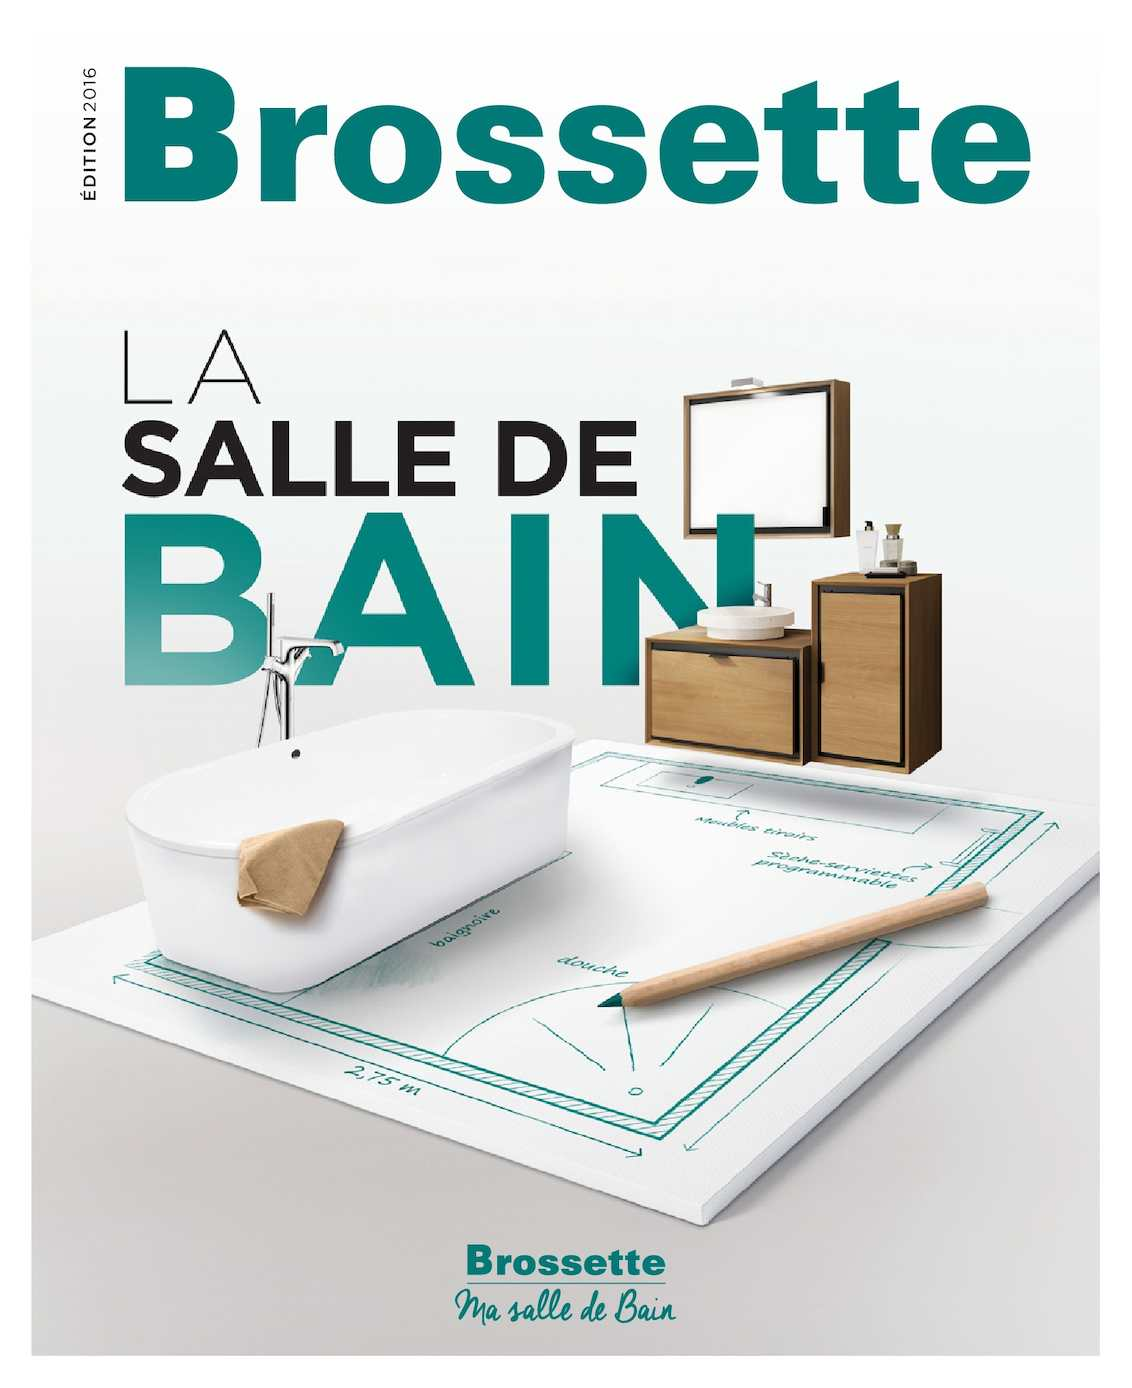 Calam o catalogue salle de bain 2016 brossette for Brossette salle de bain catalogue